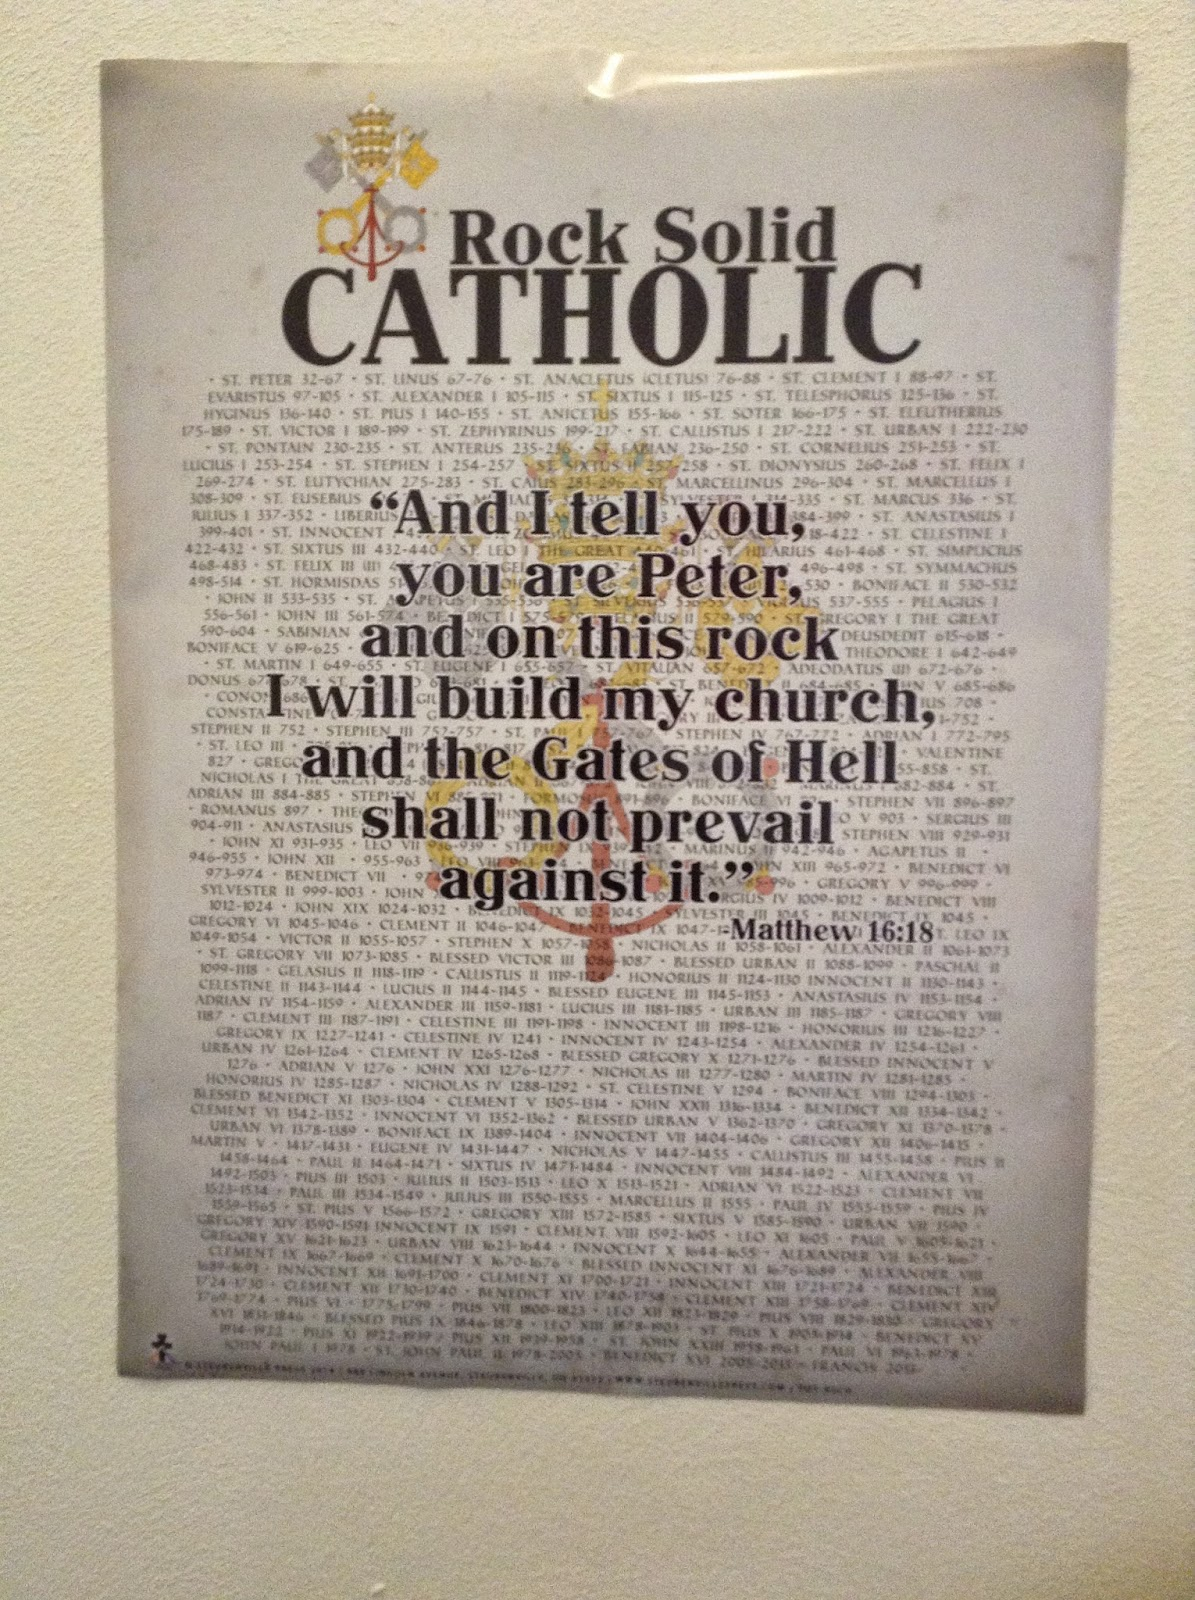 http://www.steubenvillepress.com/rock-solid-catholic-popes-of-the-church-poster/